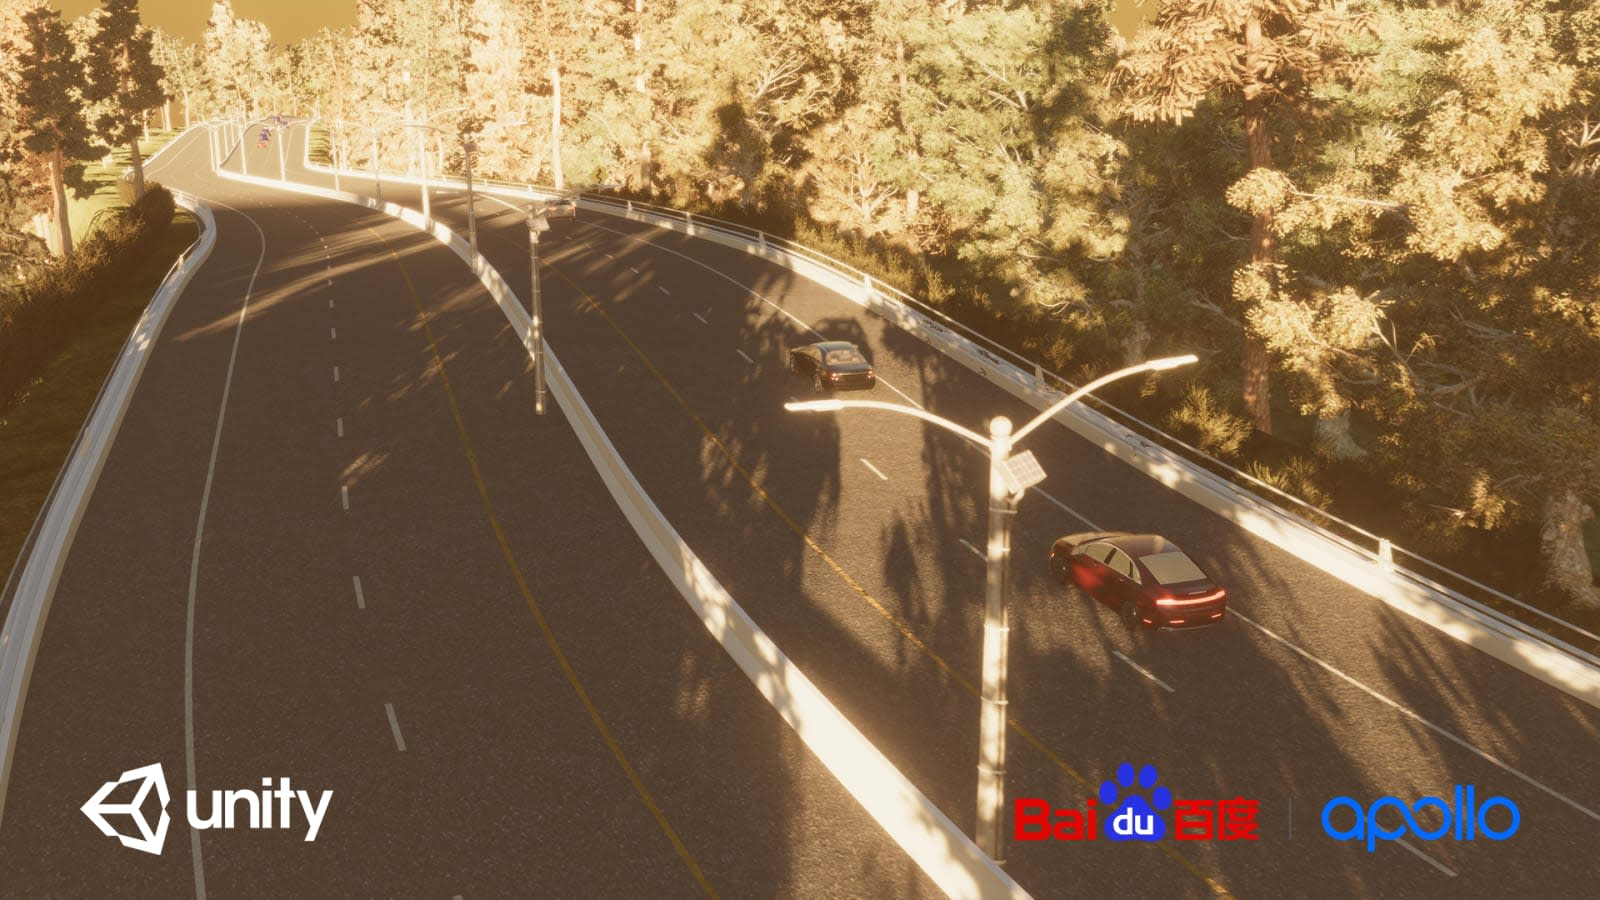 Baidu taps Unity's game engine to test its self-driving cars | Engadget